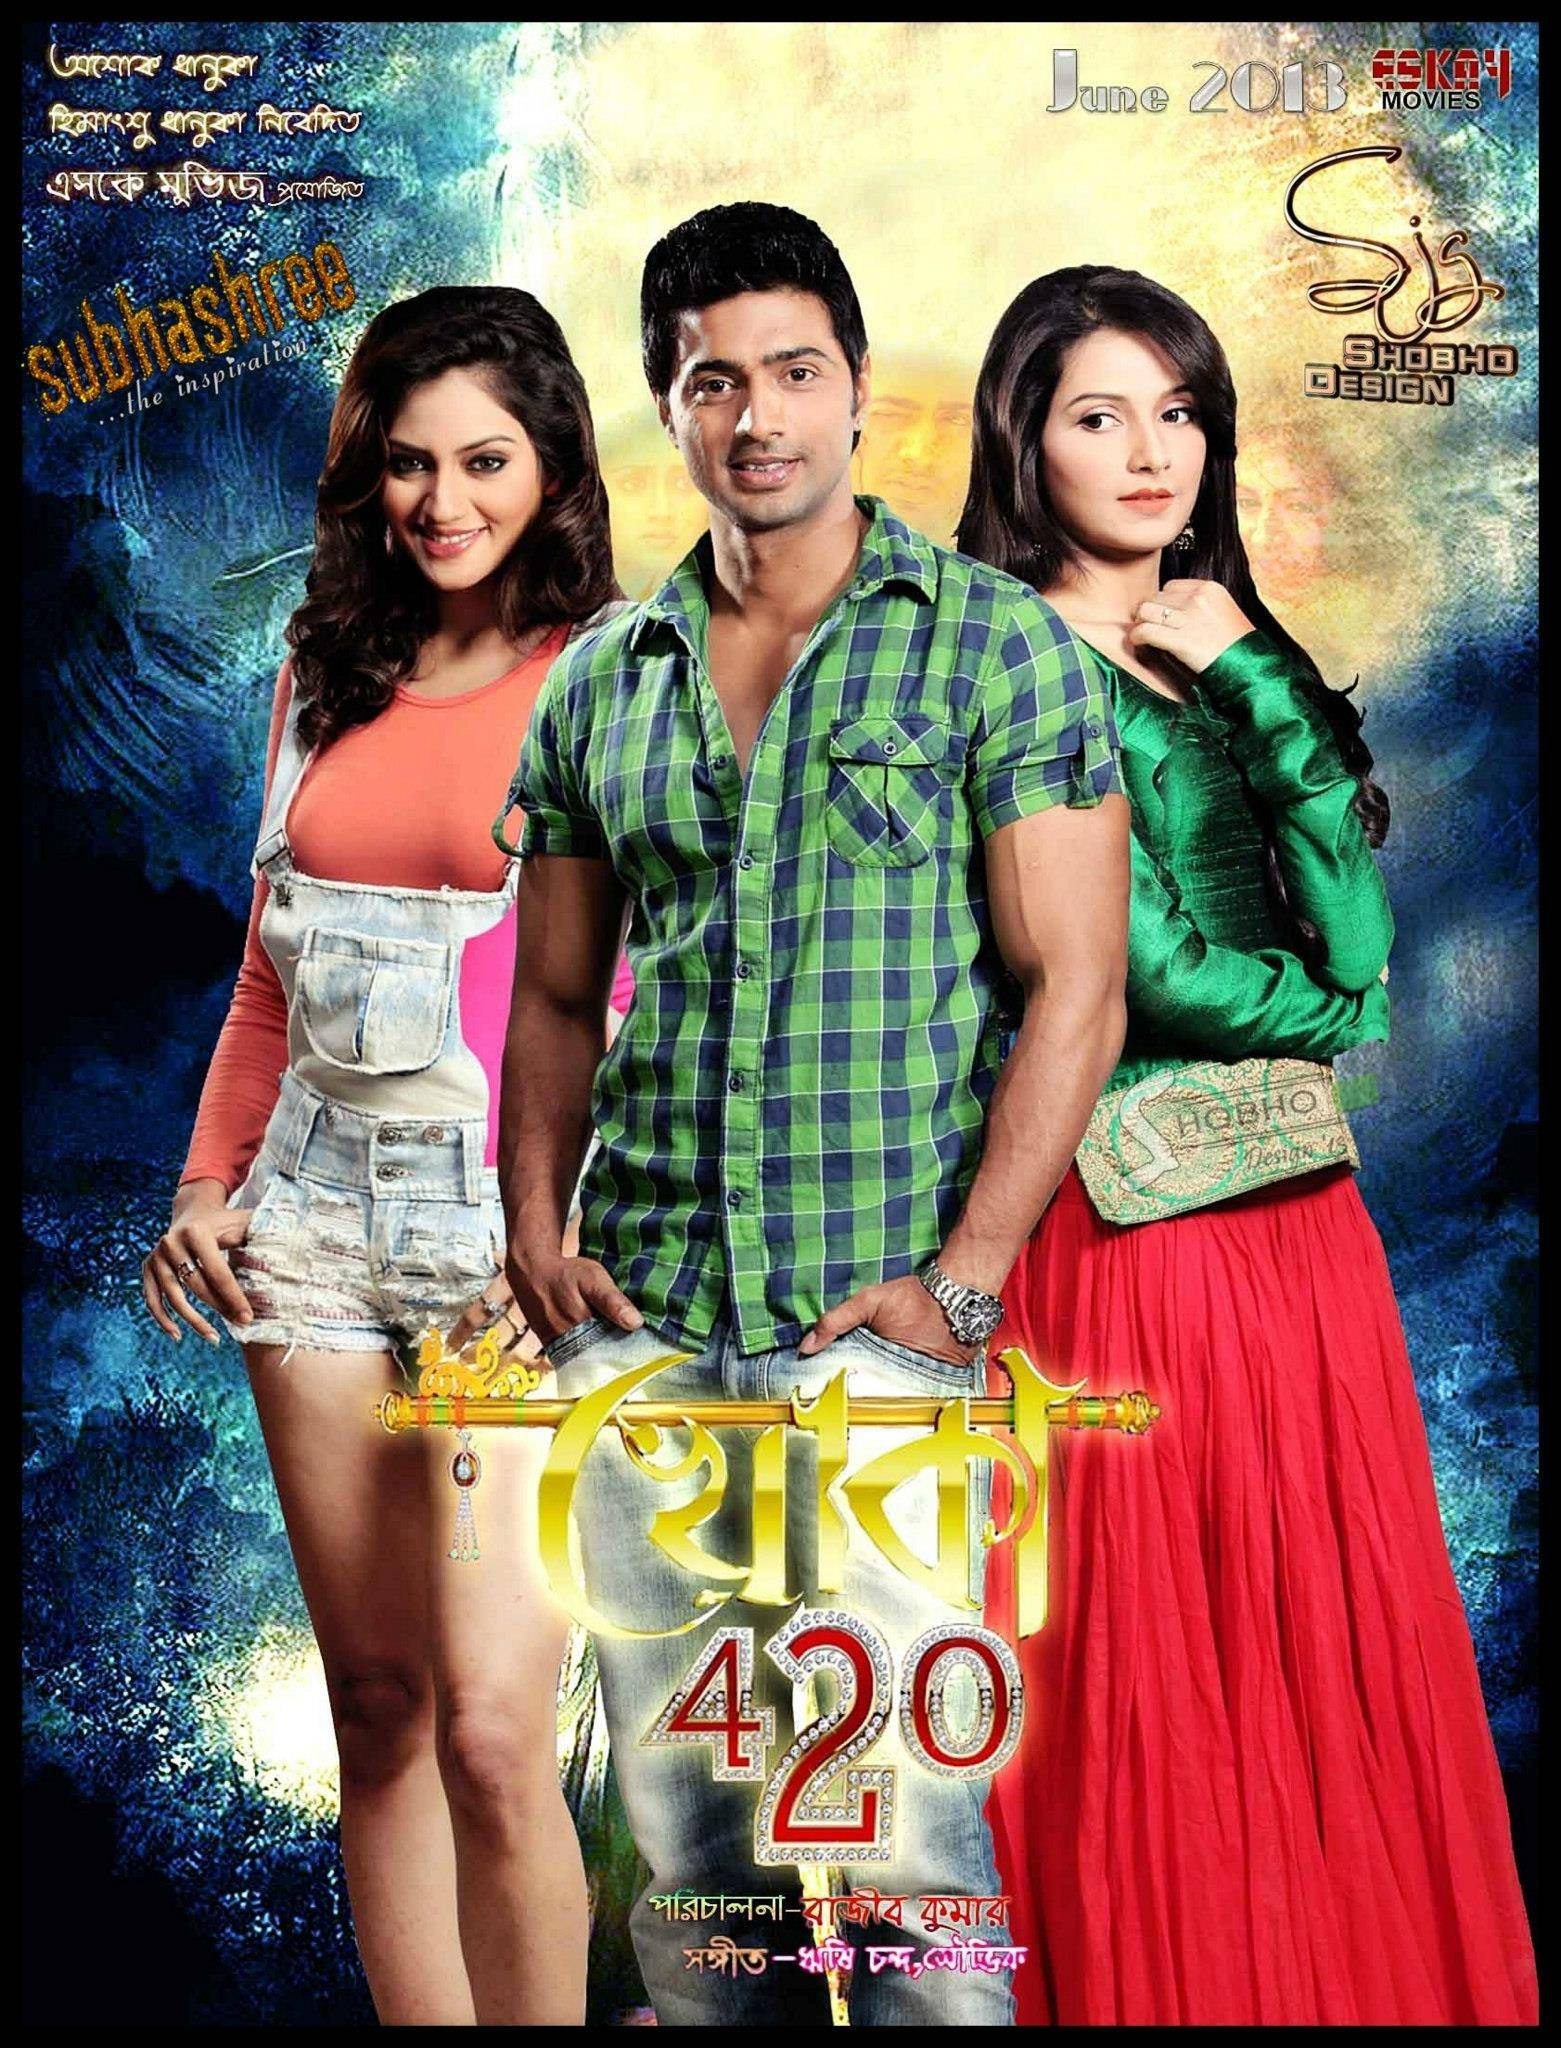 Khoka 420 (2013) Bengali 480p HDRip x264 AAC ESubs Full  (500MB) Full Movie Download